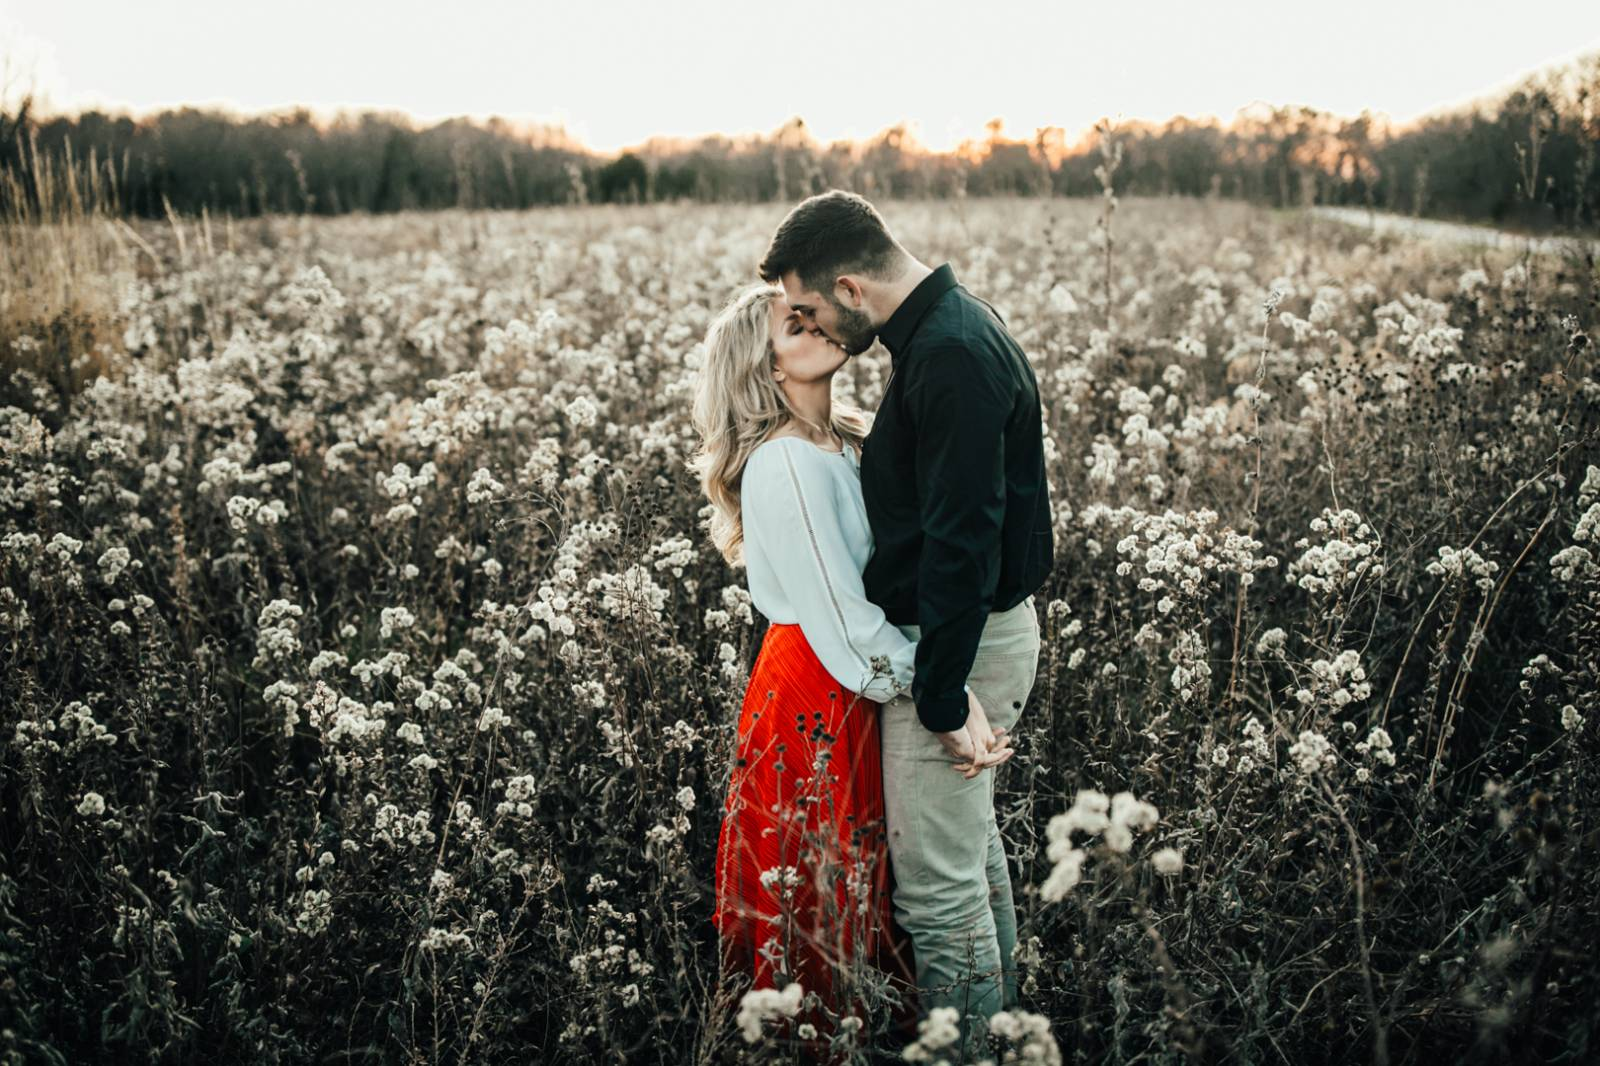 Jaclyn Dickens Photography | engagement photo in a field of flowers